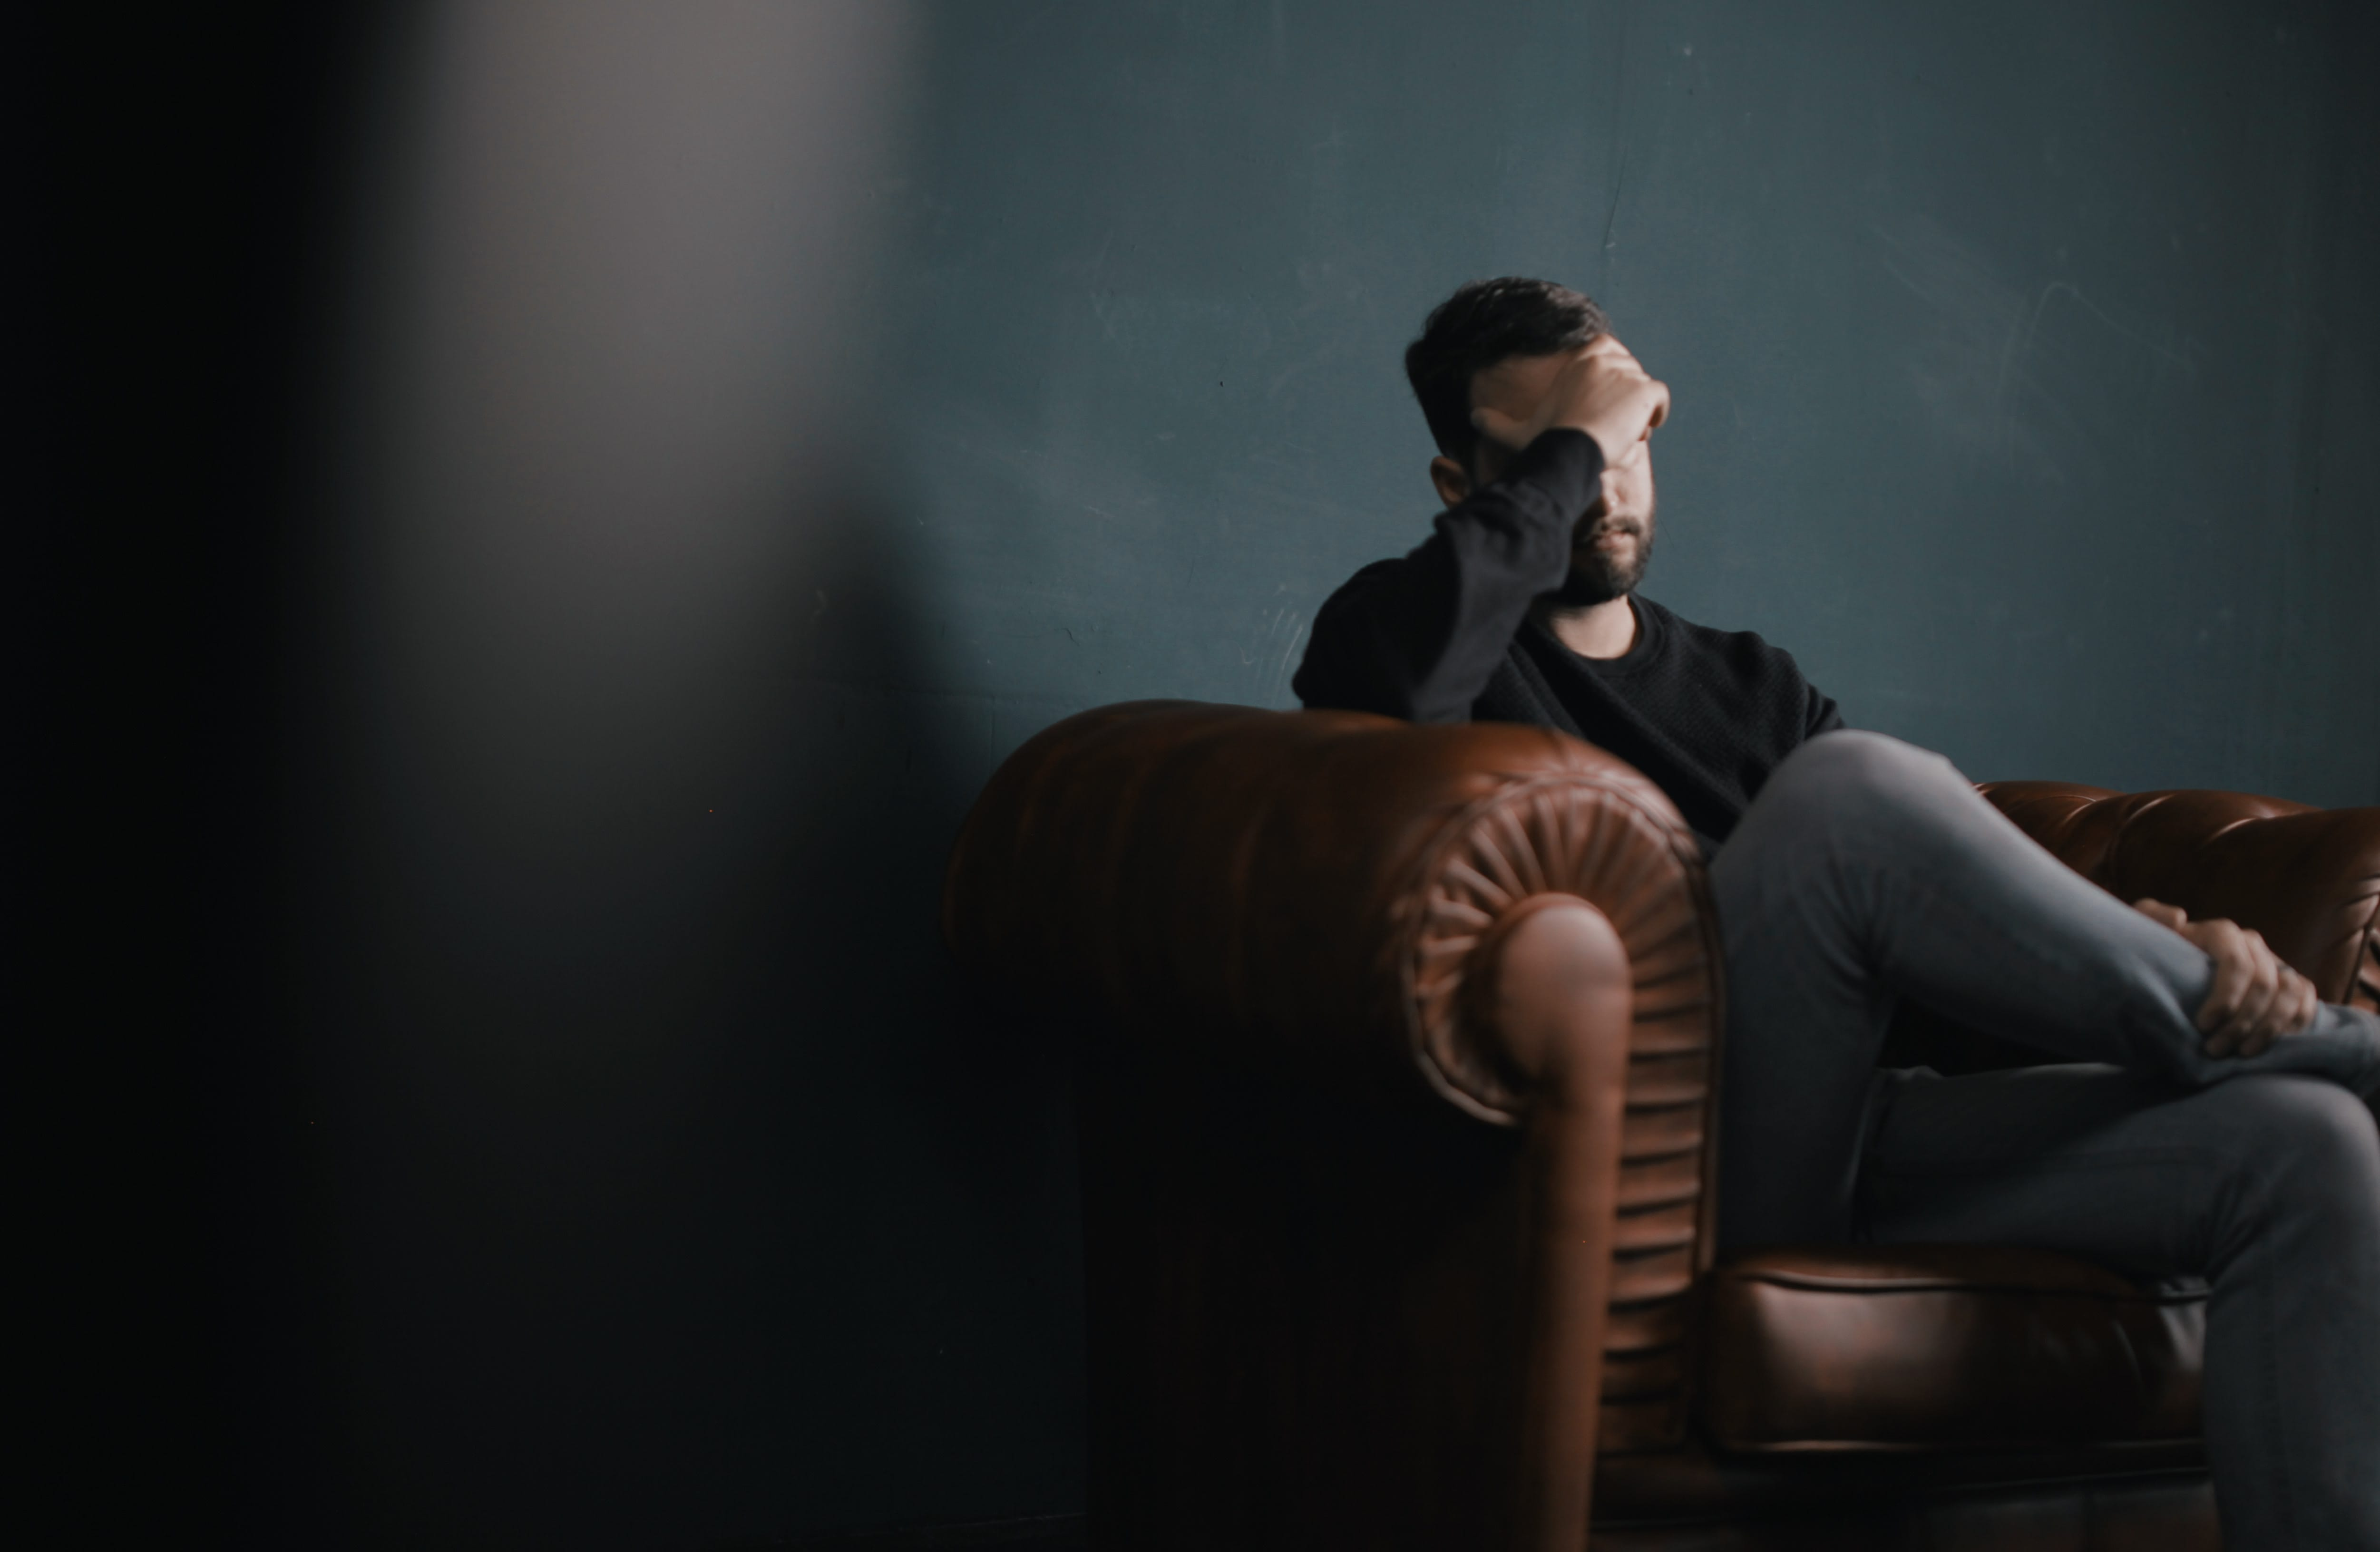 Man in chair, head in one hand; image by Nik Shuliahin, via unsplash.com.